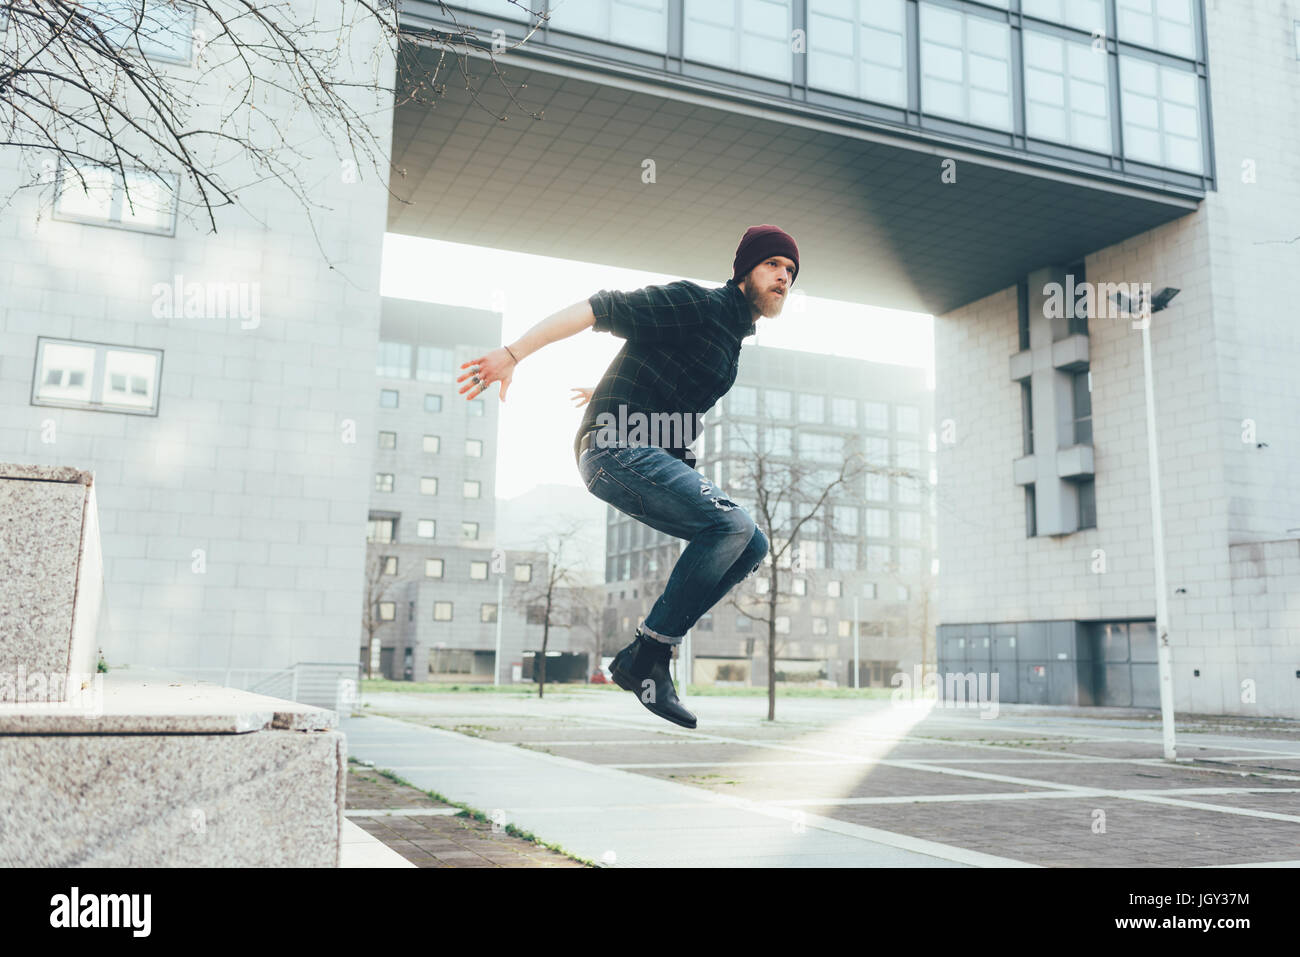 Young male hipster jumping mid air practicing parkour in city - Stock Image